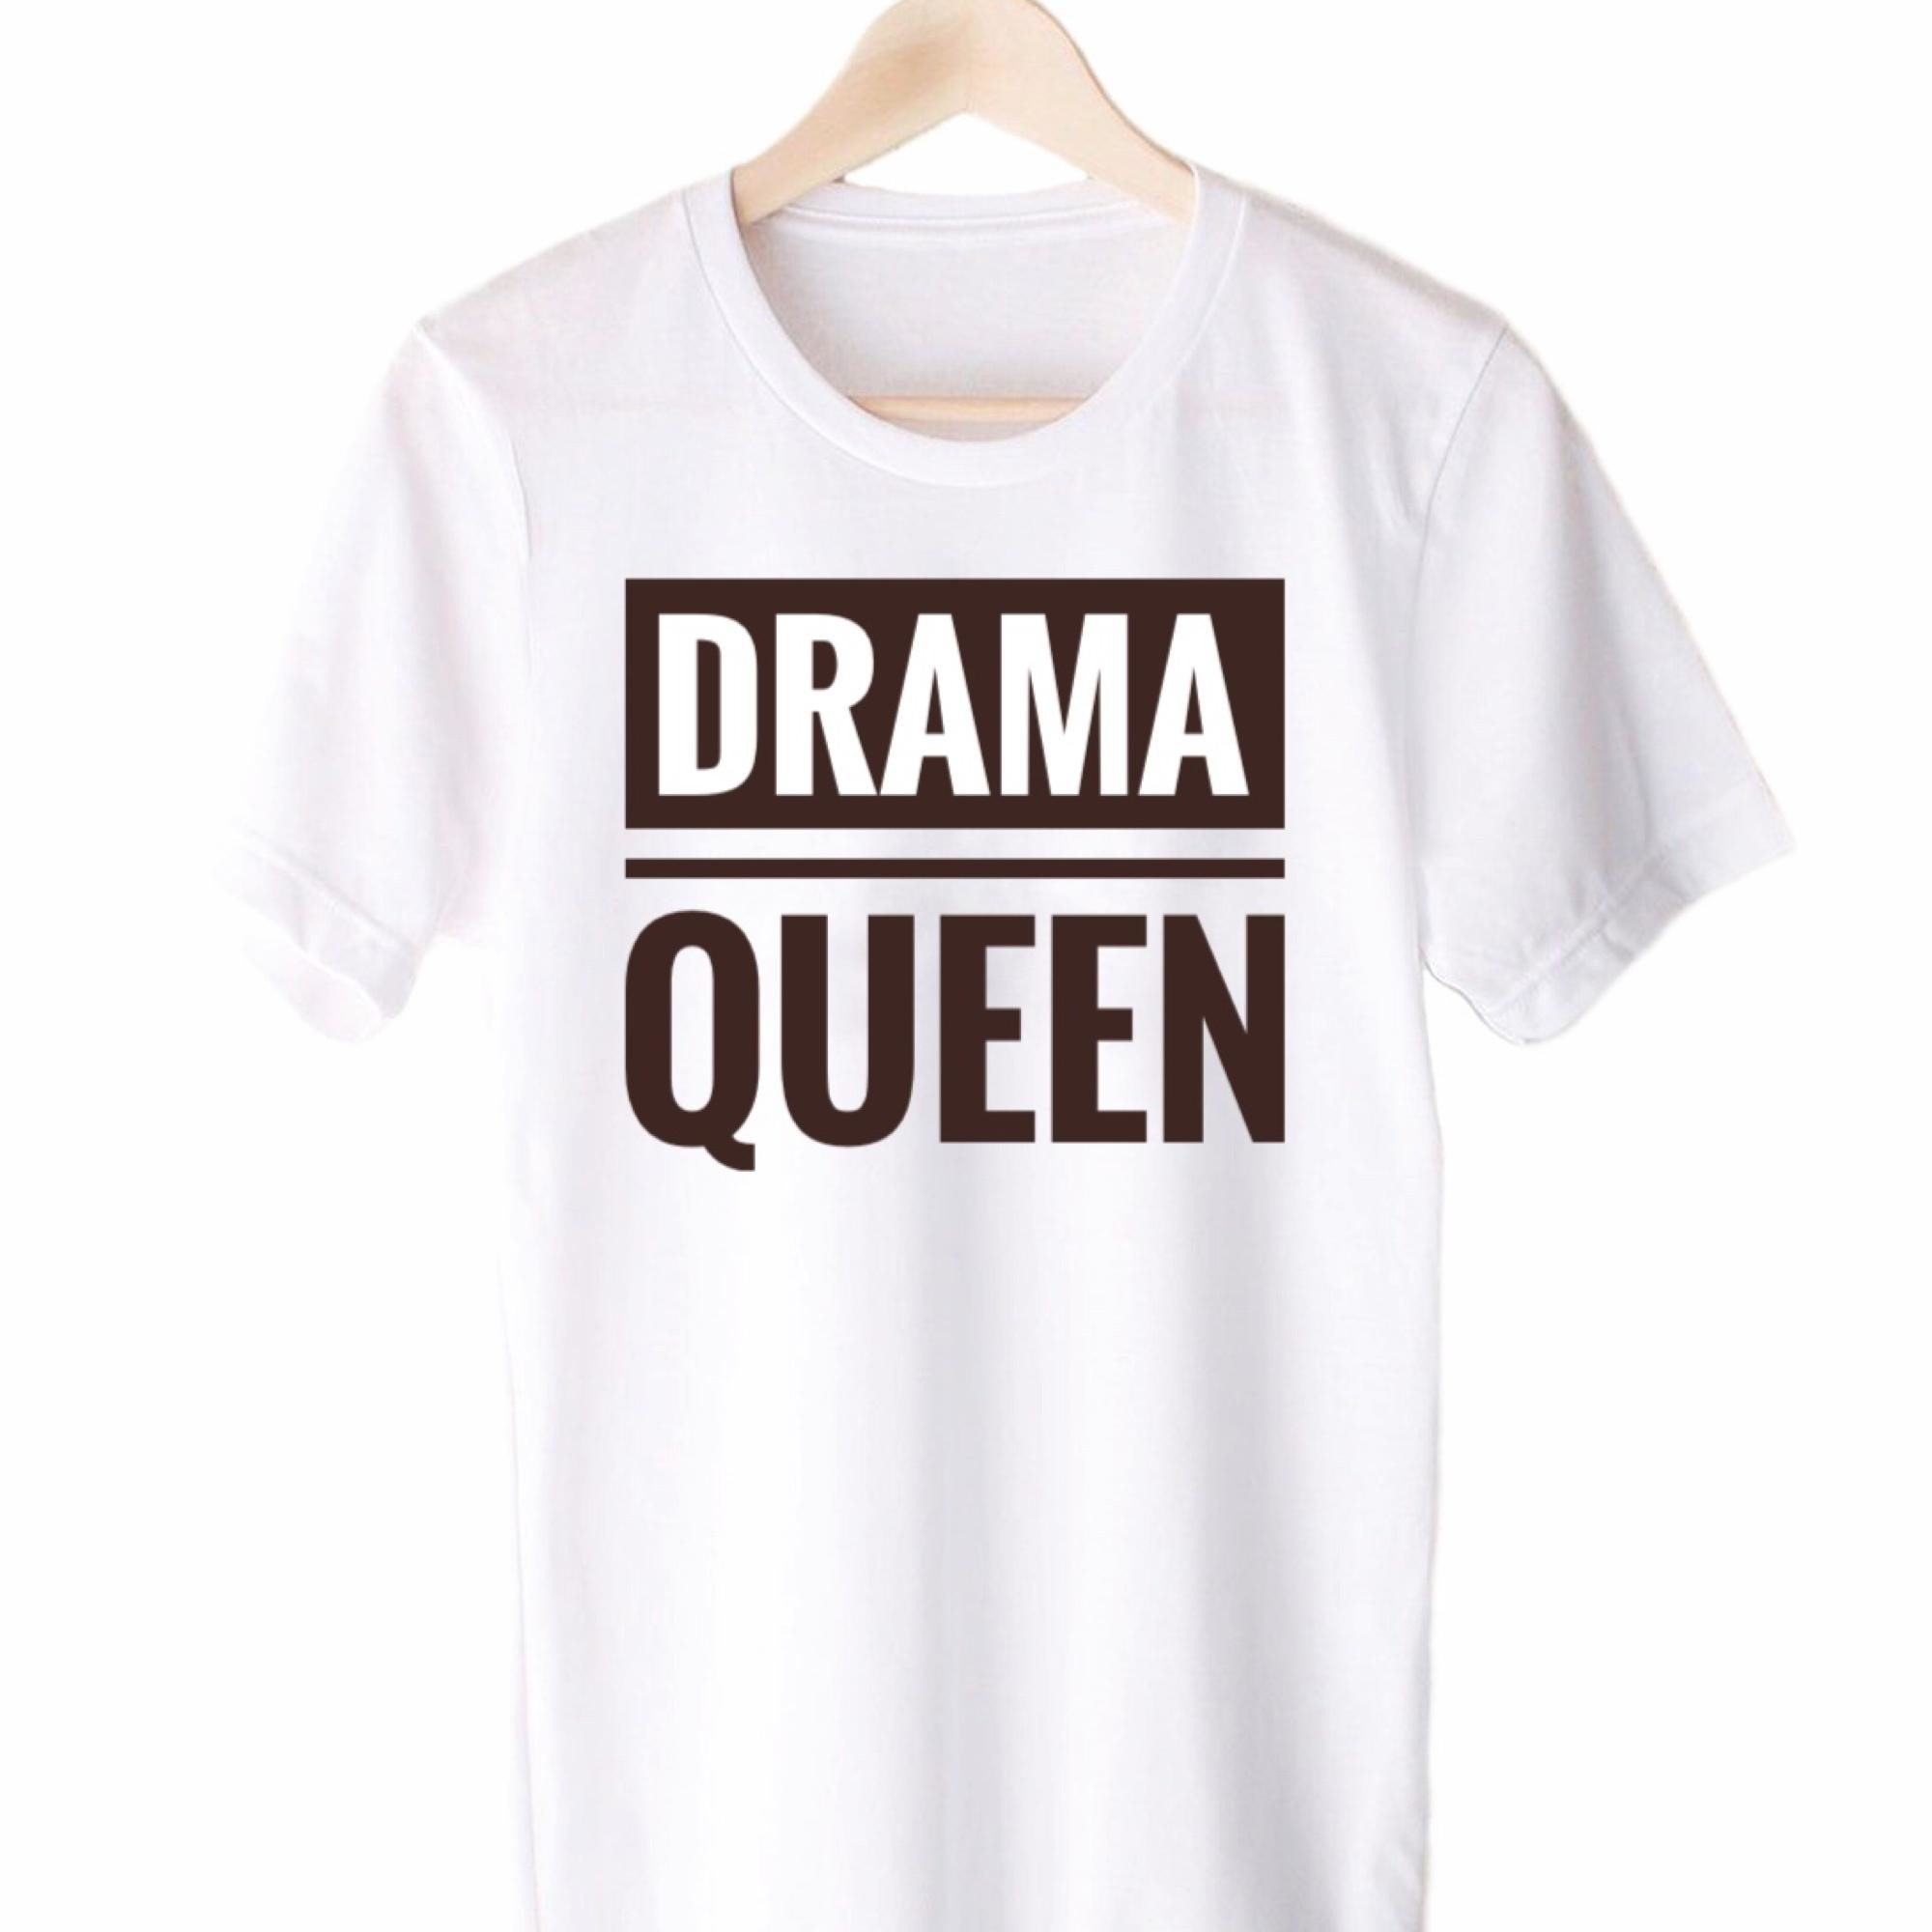 28898f2b8d Camiseta Drama Queen no Elo7